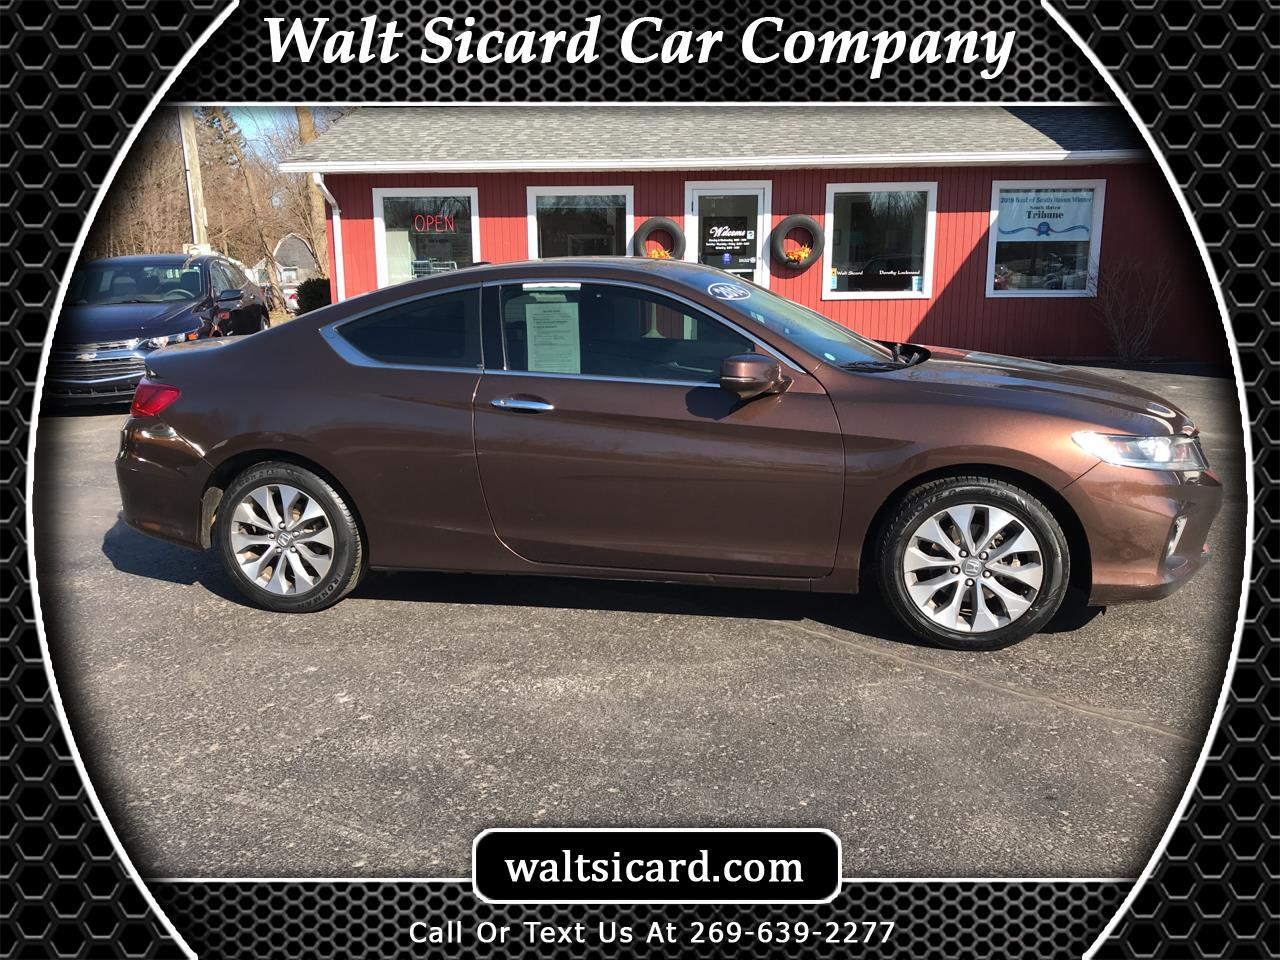 Honda Accord Coupe 2dr I4 CVT EX-L 2014